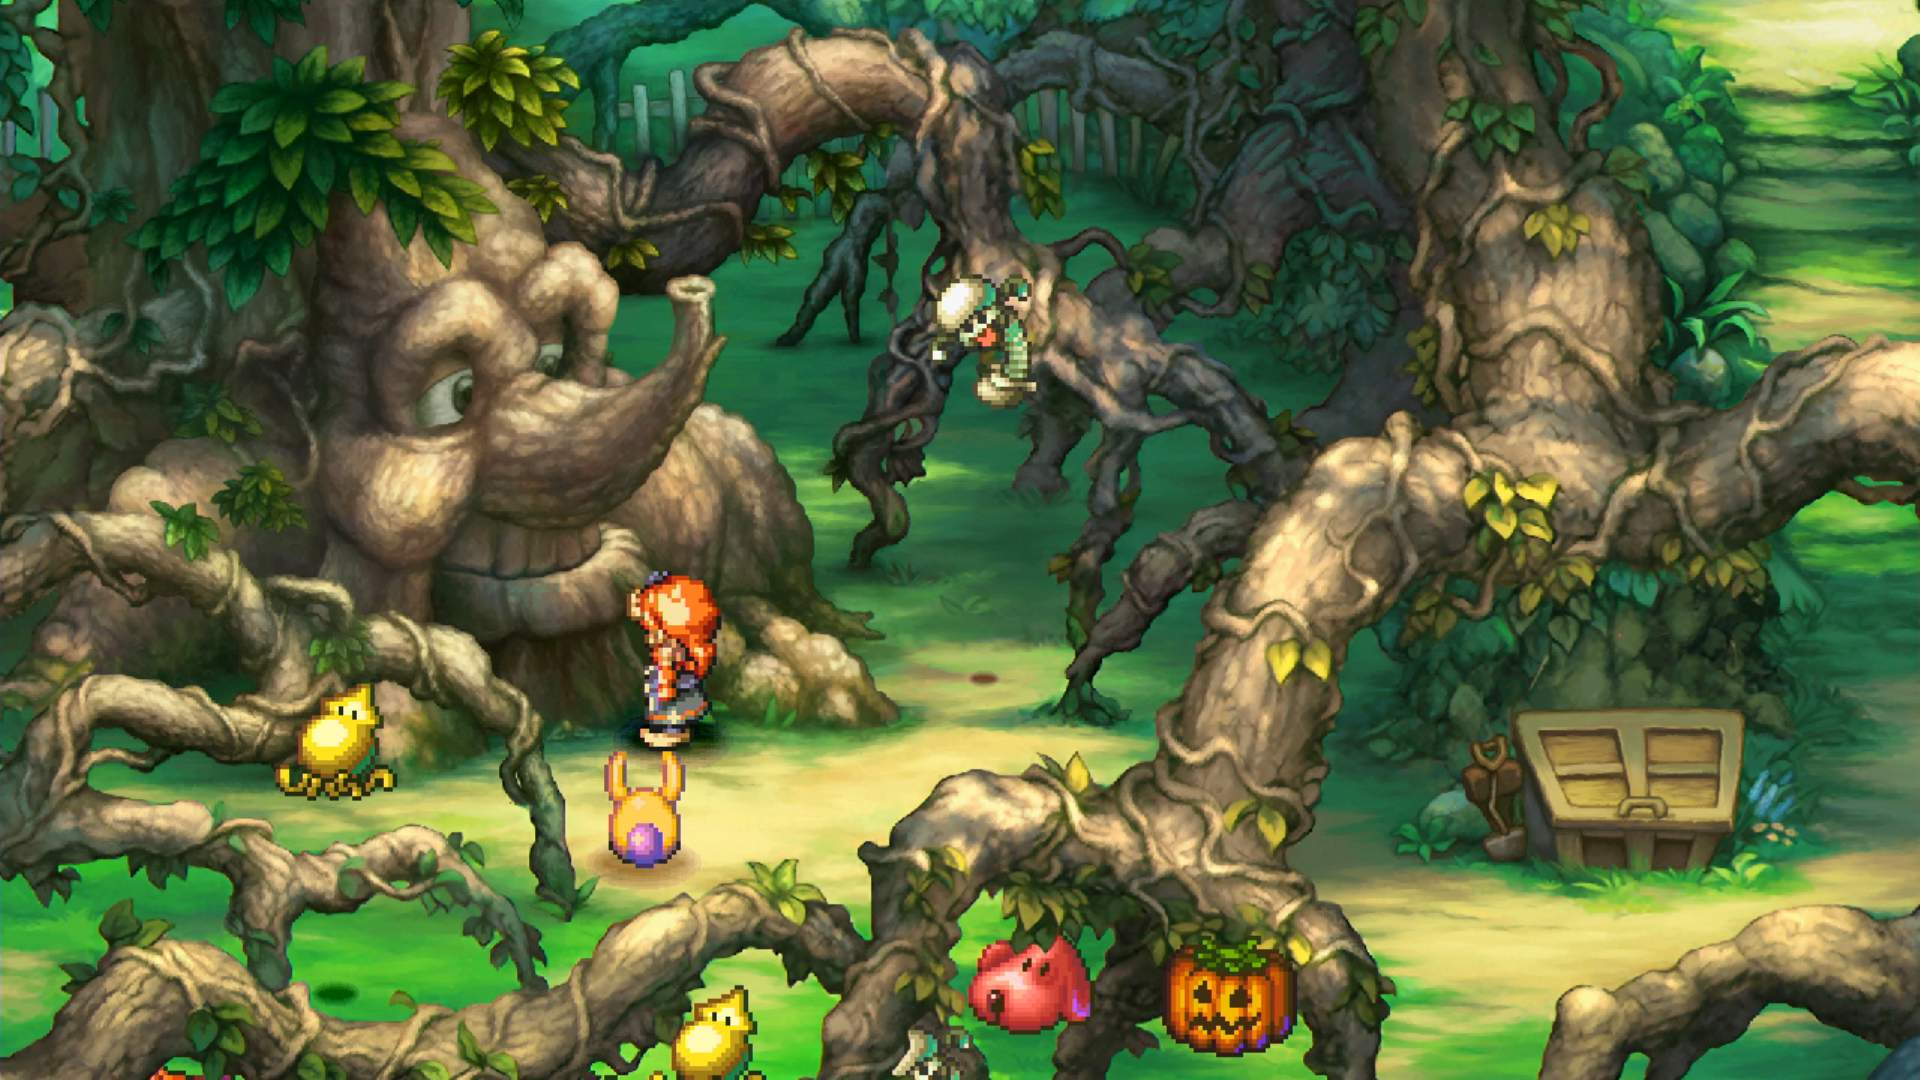 The Legend of Mana hero is standing in the Mana Orchard, in front of Trent.